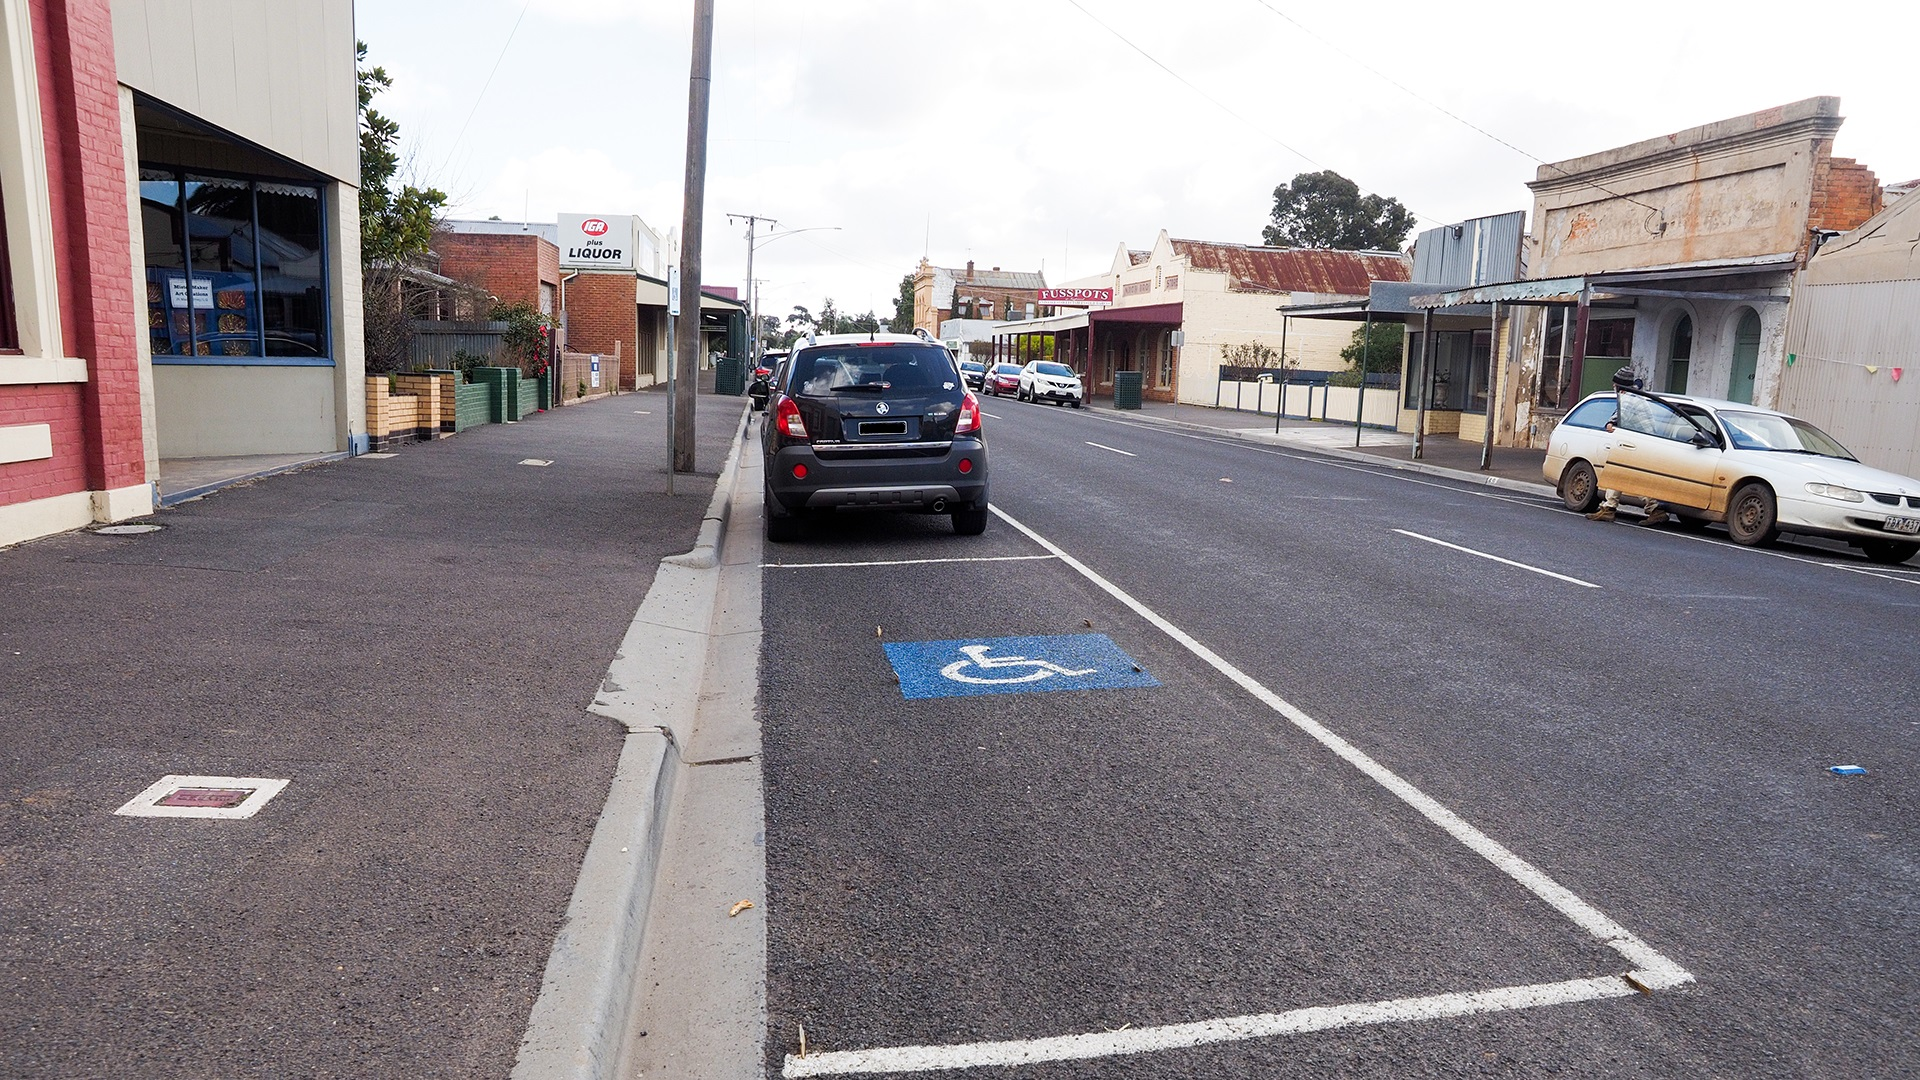 Disabled parking is available on Brooke Street in Inglewood